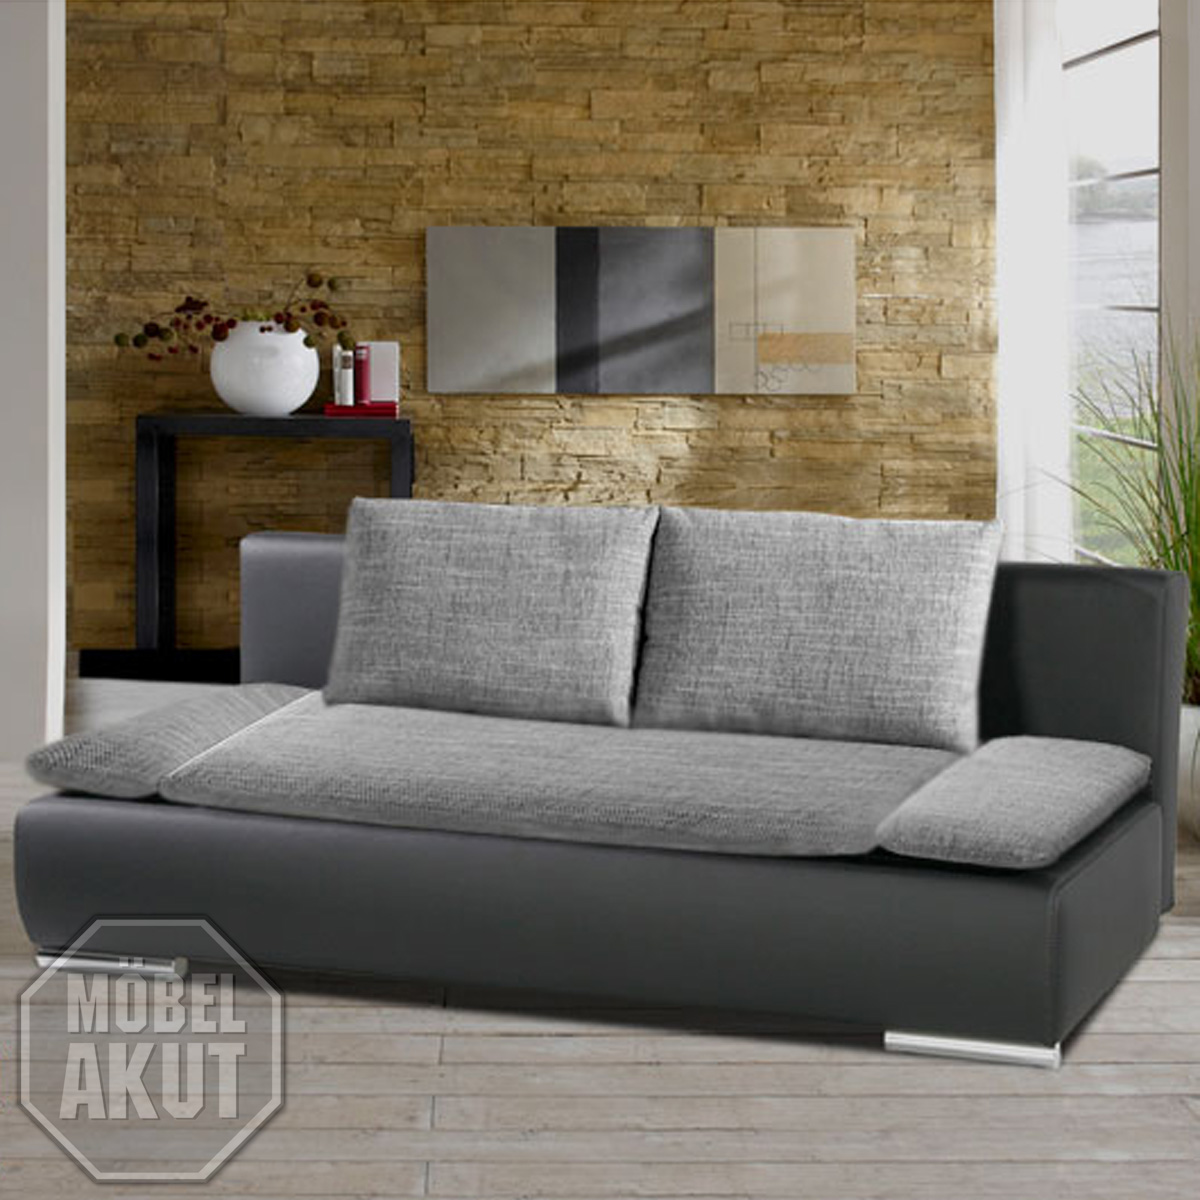 doppel schlafsofa devil sofa funktionssofa in schwarz grau mit bettkasten ebay. Black Bedroom Furniture Sets. Home Design Ideas